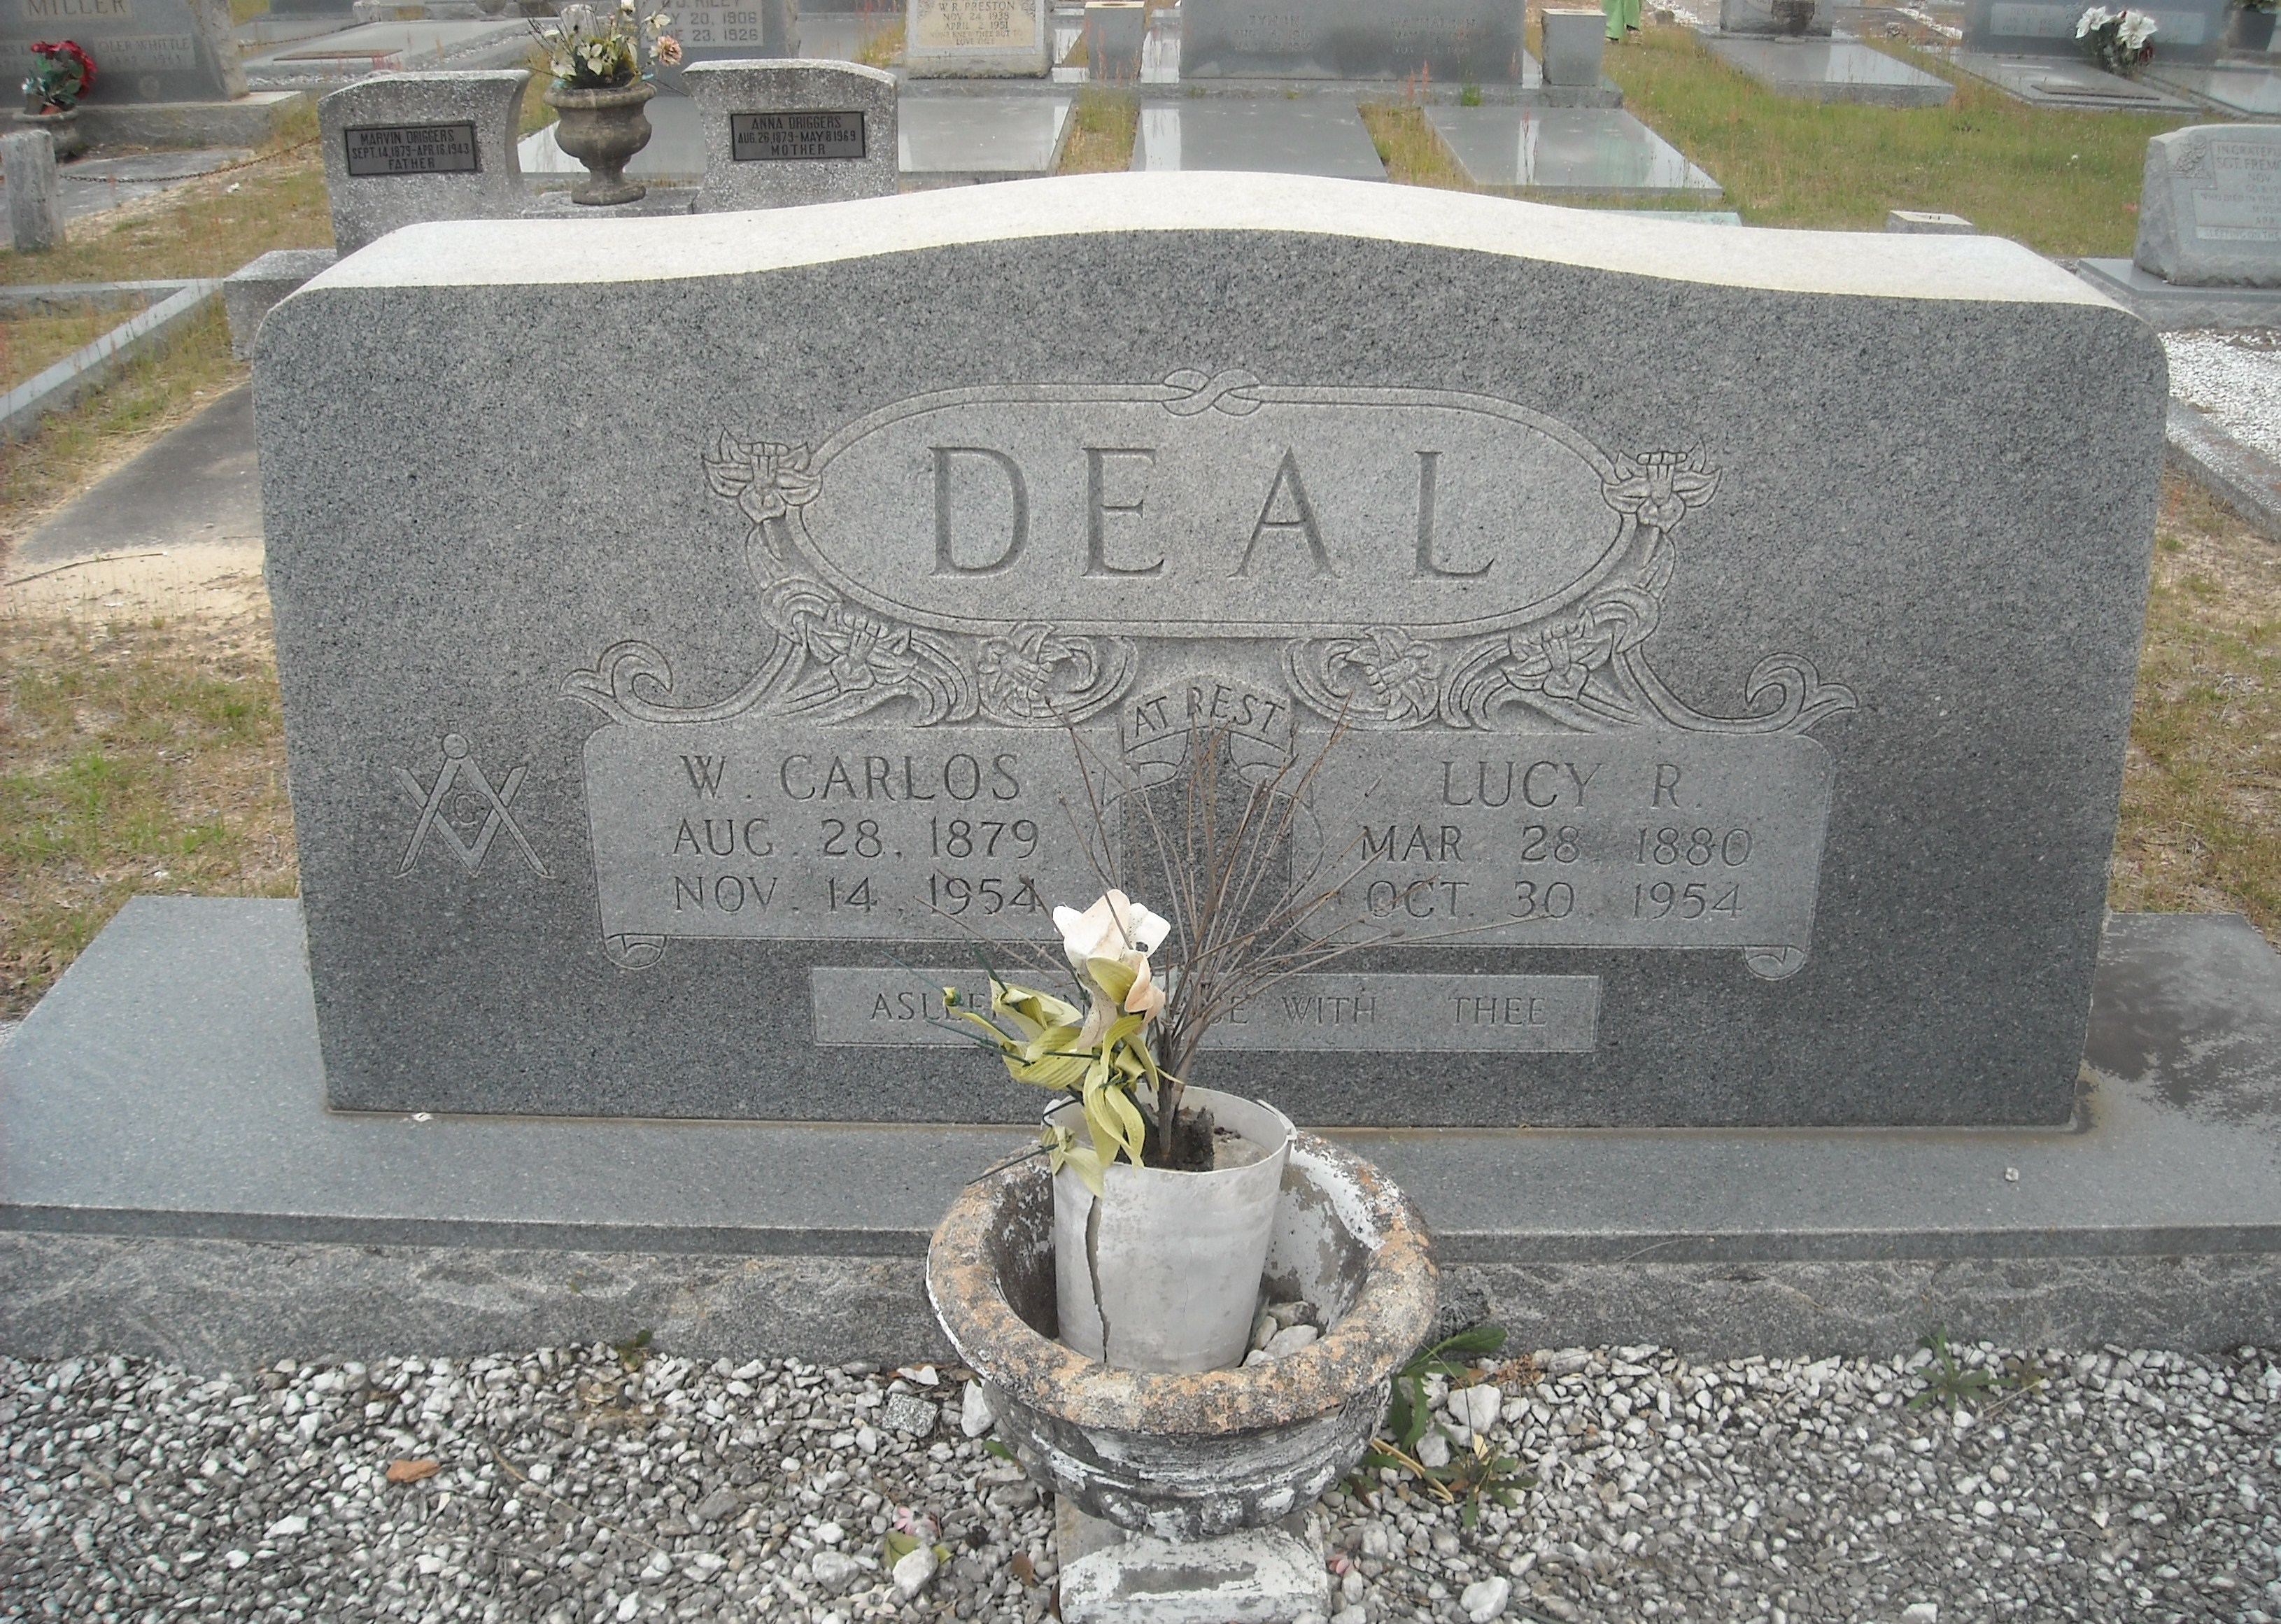 William Deal